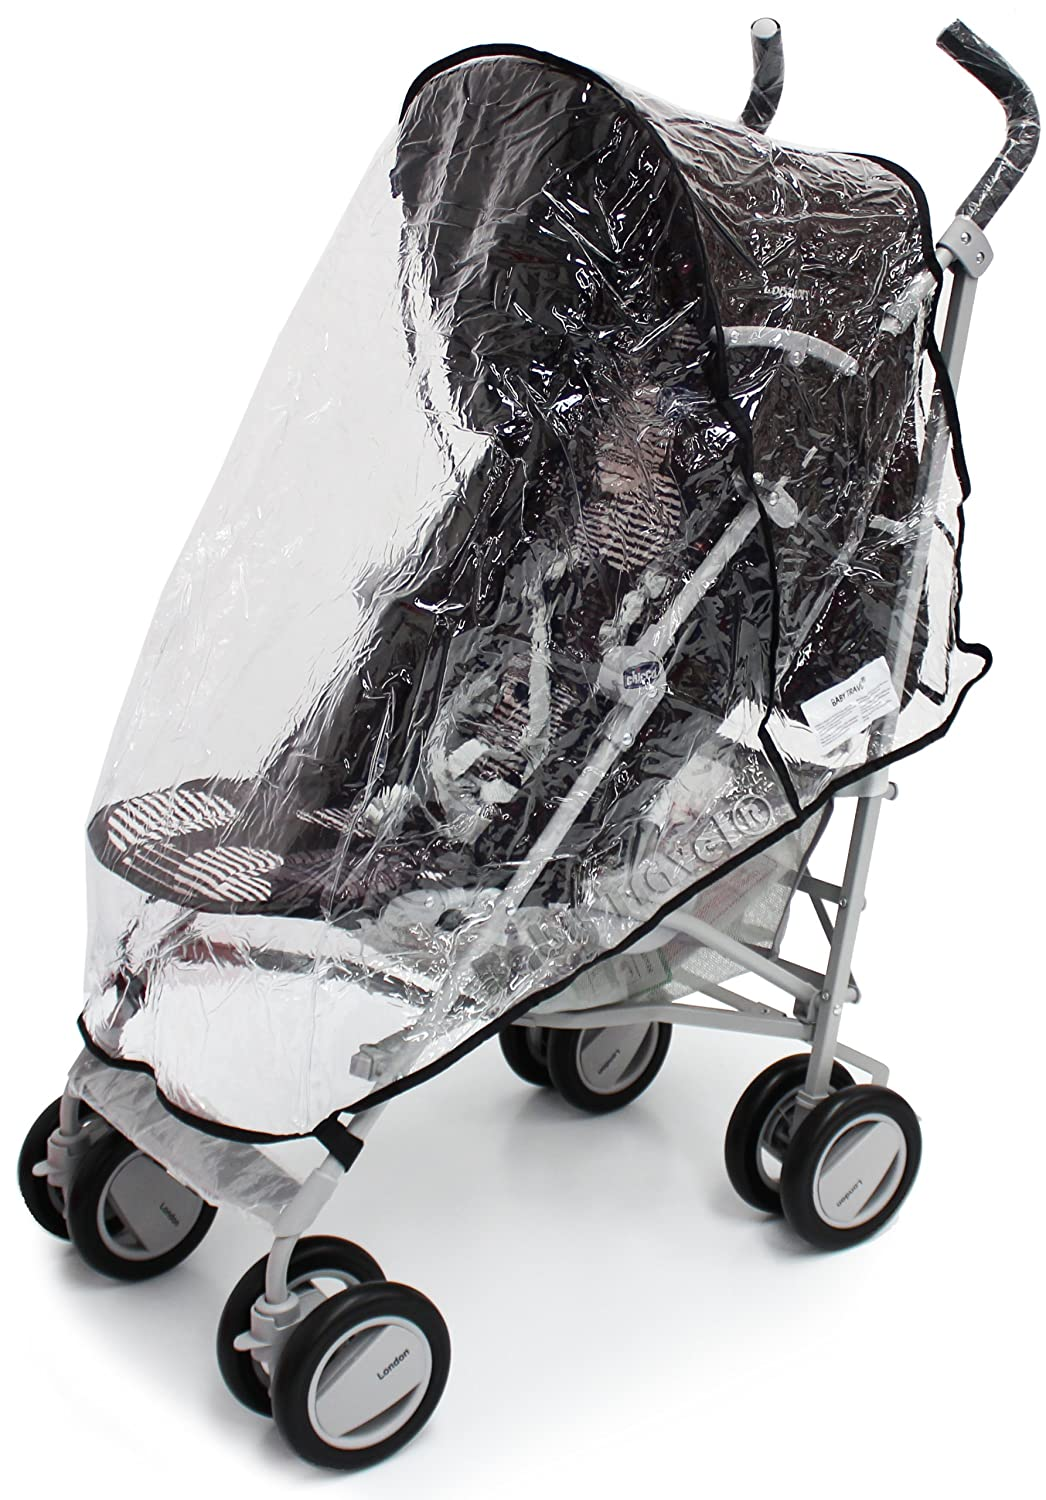 Chicco London Rain Cover Stroller Throw Over Raincover | eBay